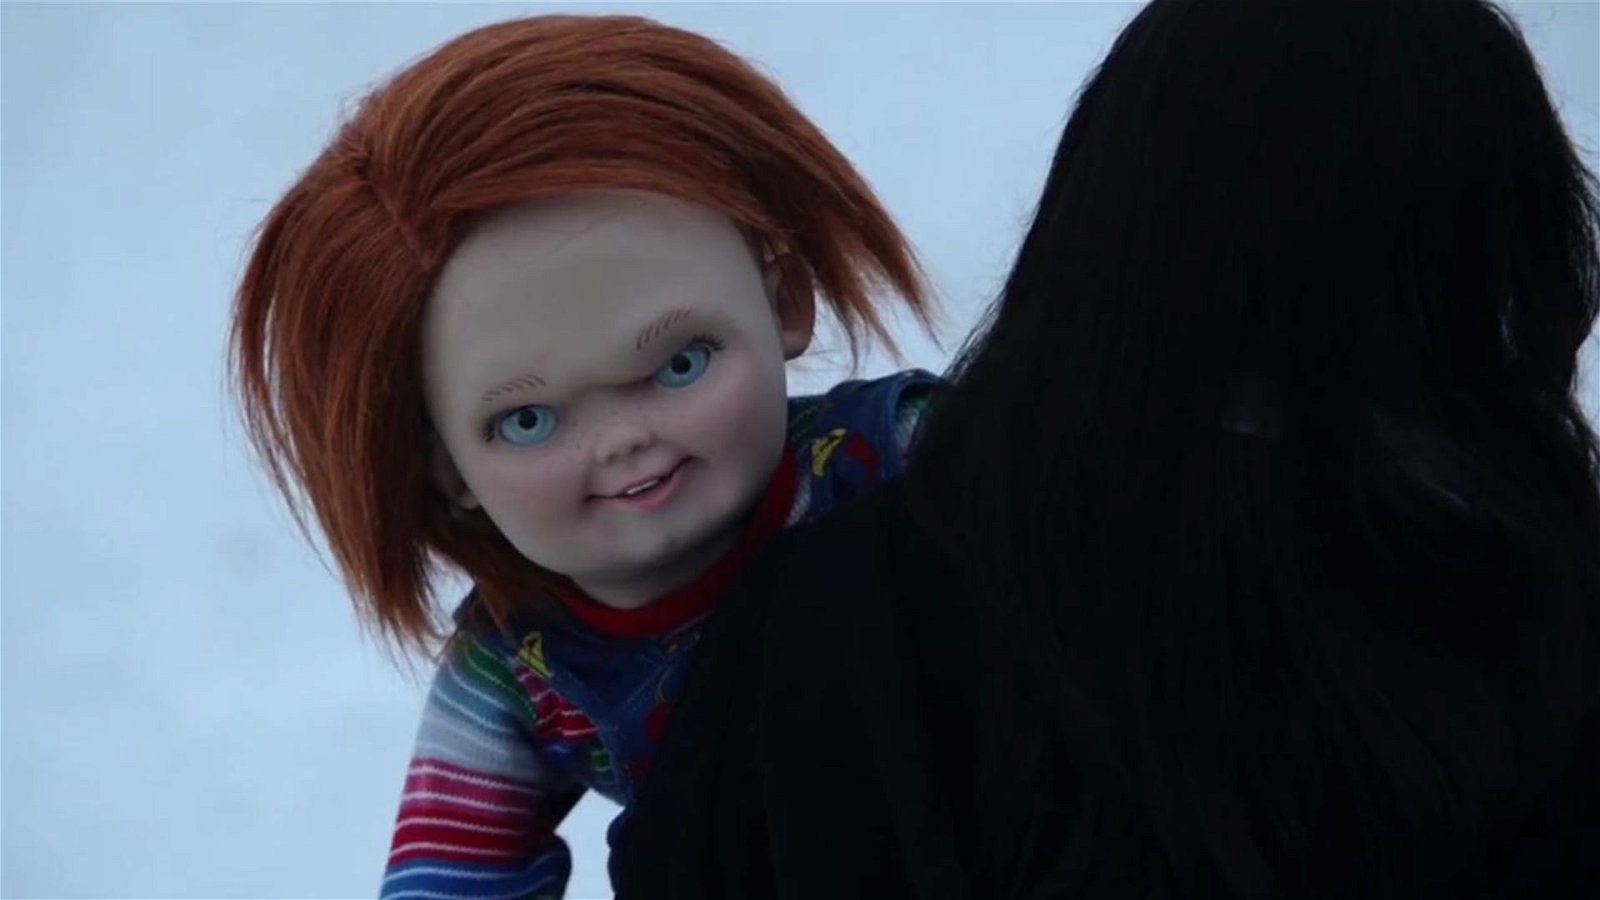 Cult Of Chucky (2017) Review 2